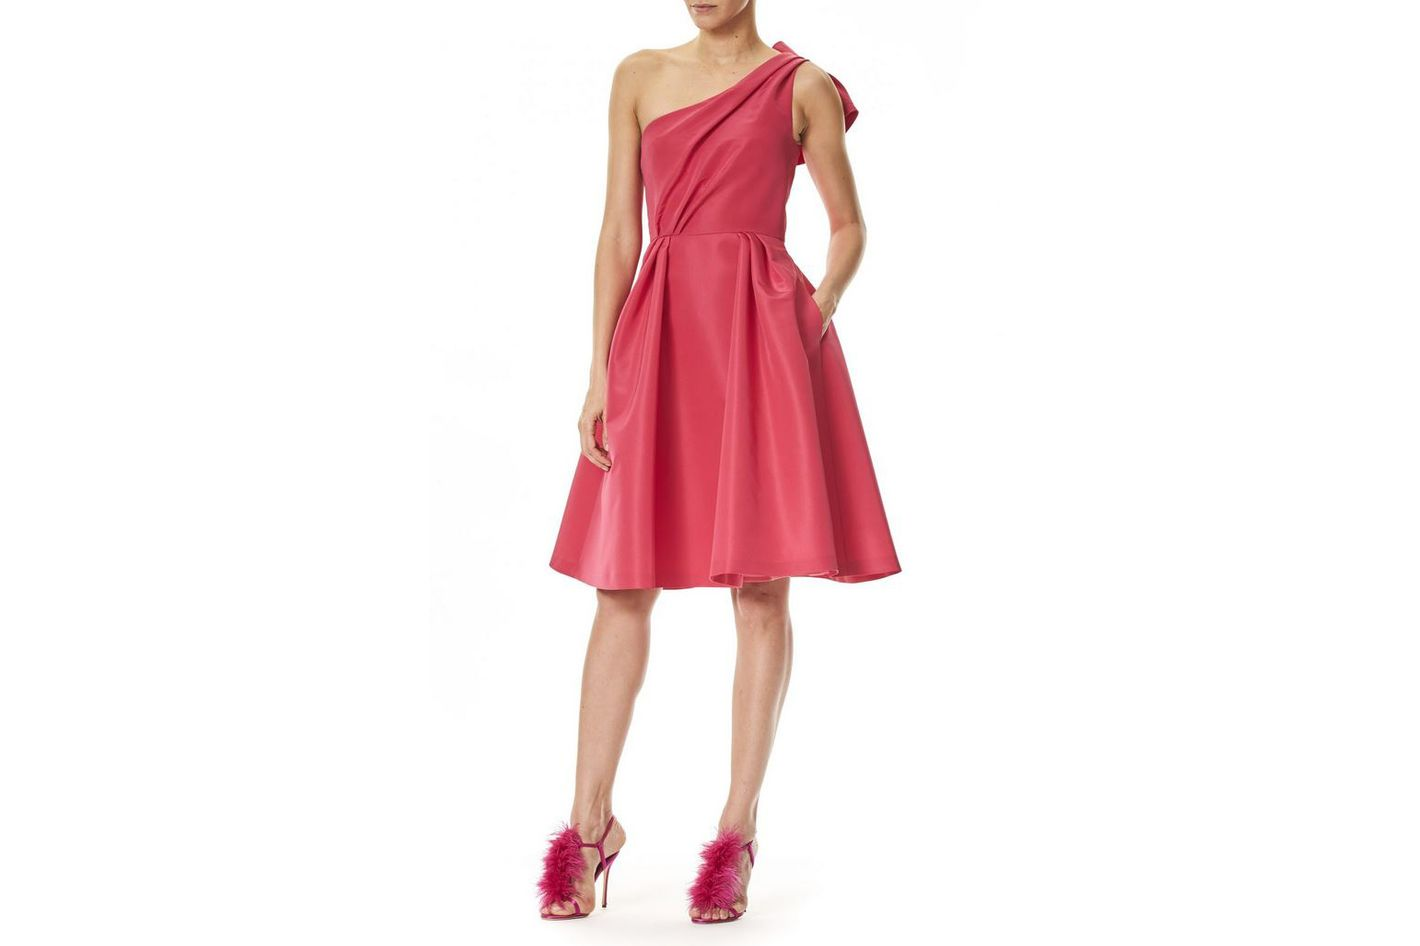 Carolina Herrera One-Shoulder Bow Back Dress